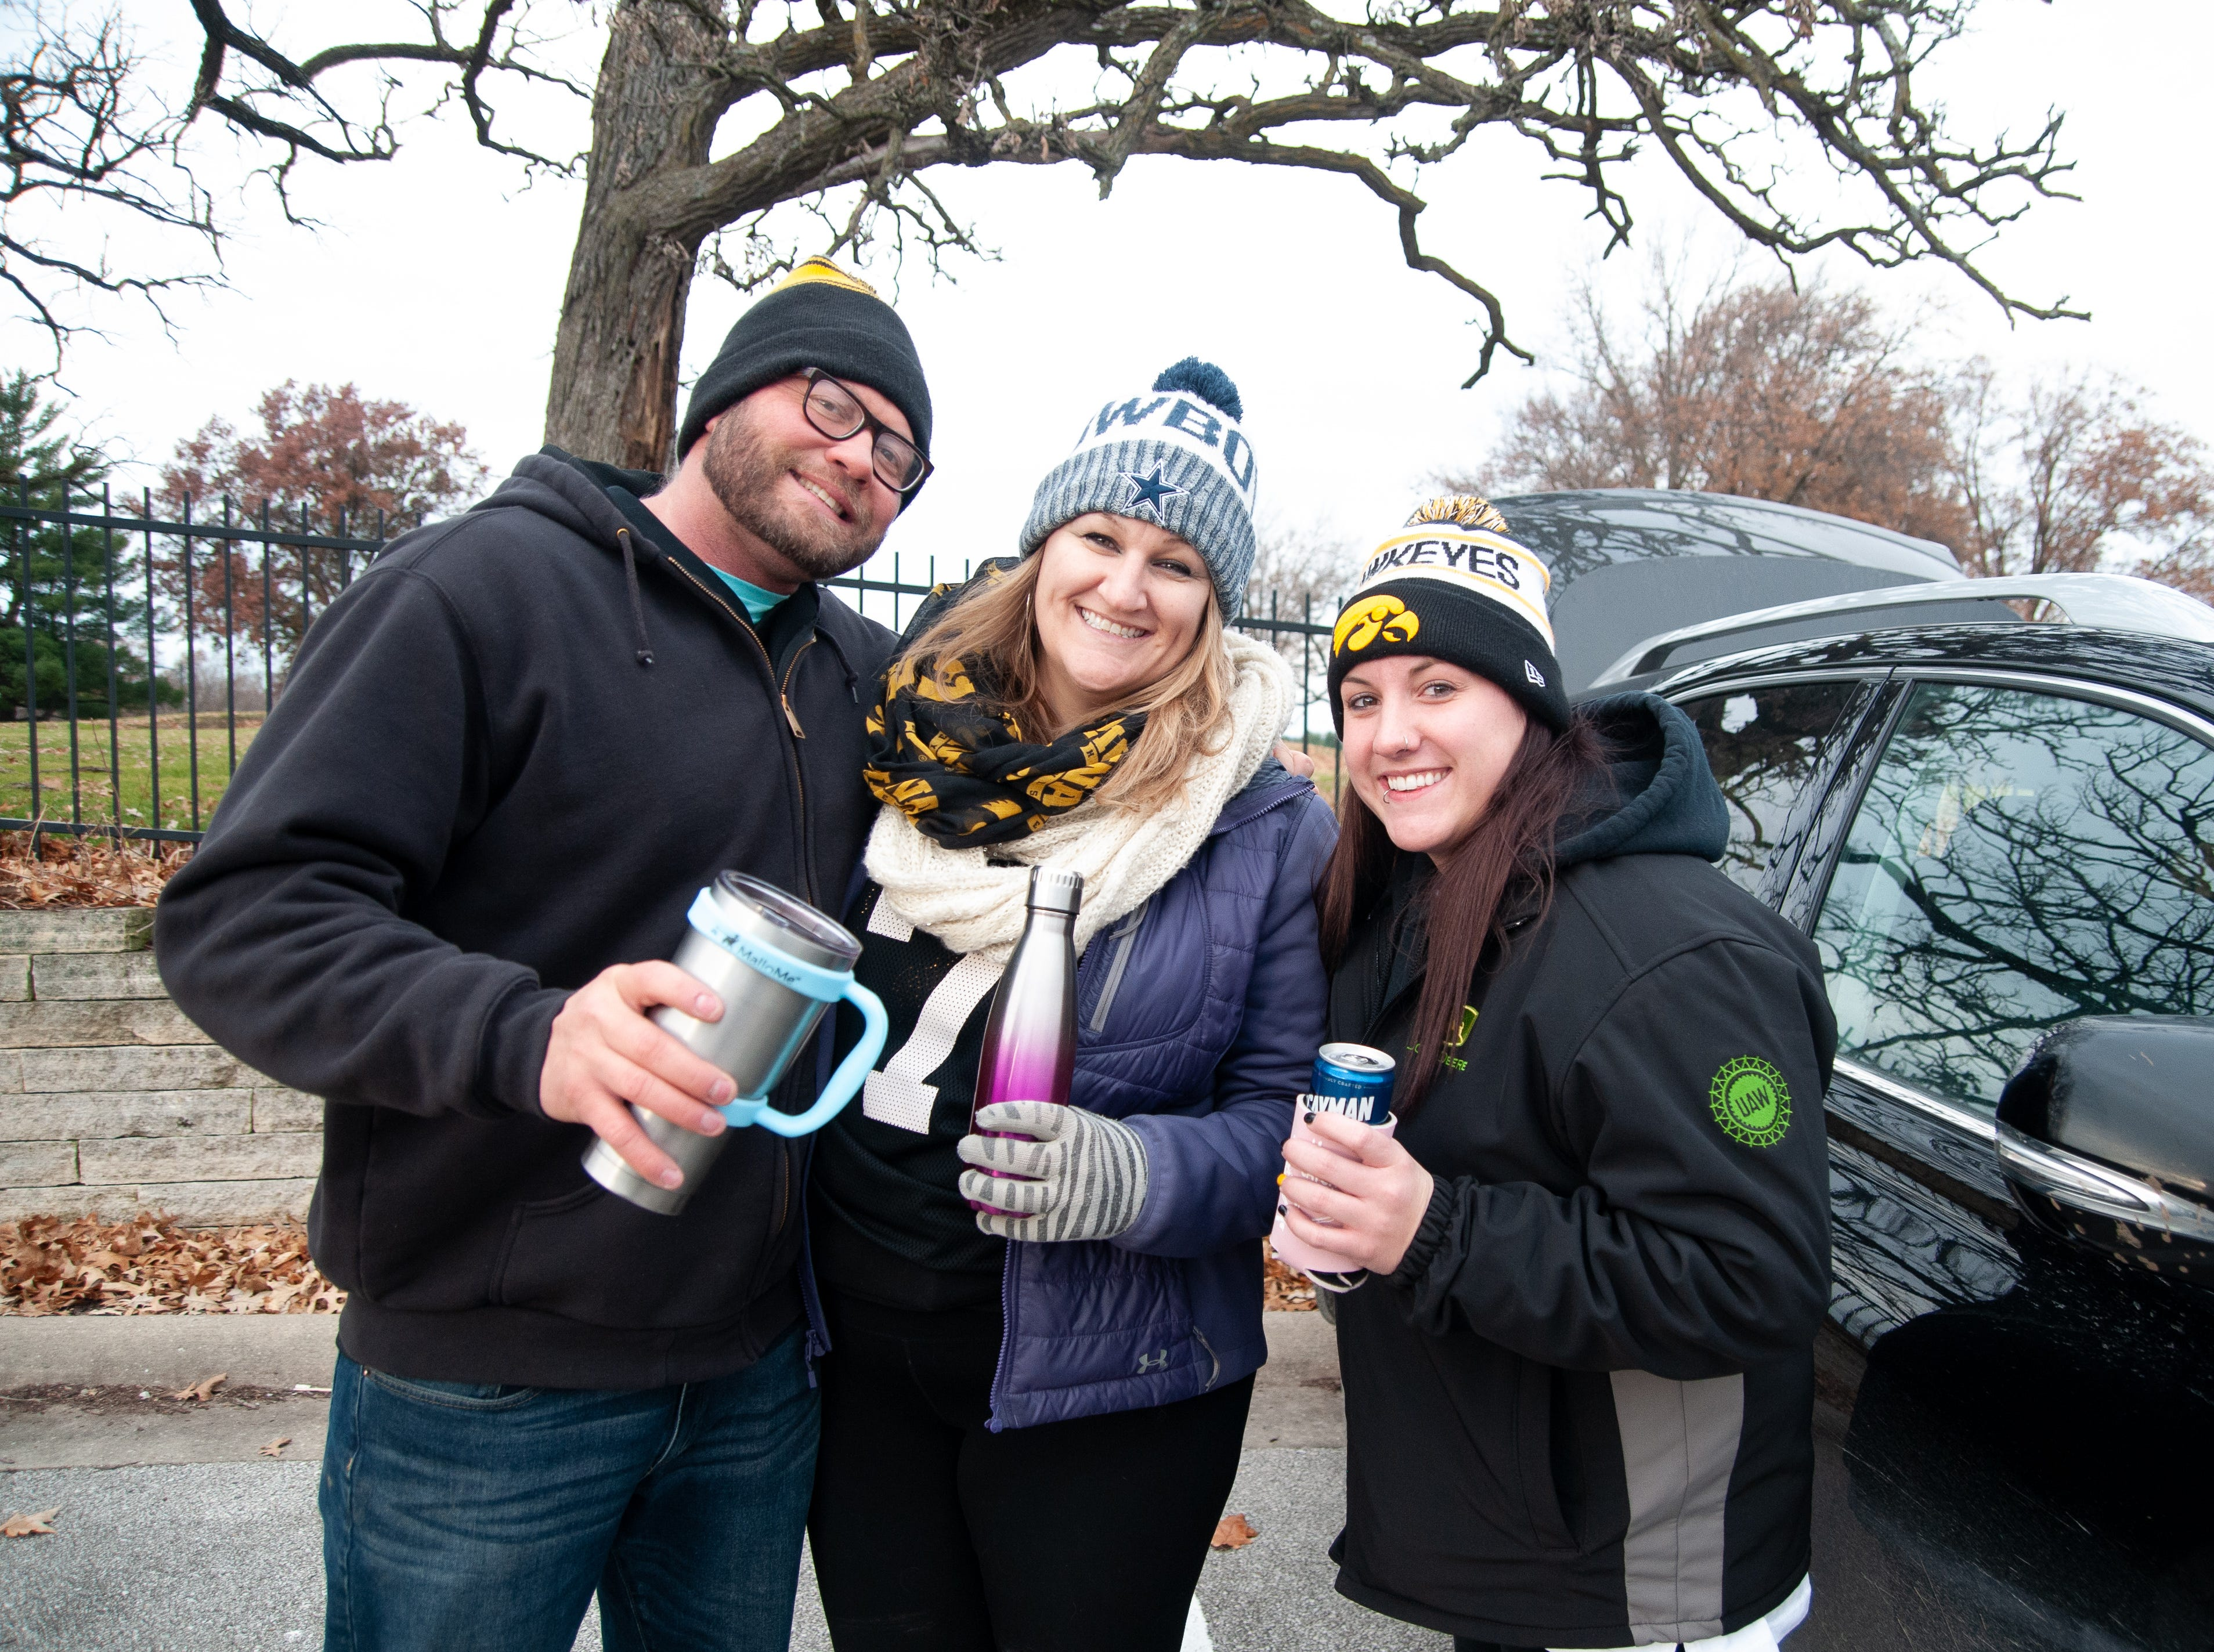 Chad Geiken, left, Elizabeth O'Connell and Jennifer Gibbs, of Waterloo, Friday, Nov. 23, 2018, while tailgating before the Iowa game against Nebraska in Iowa City.